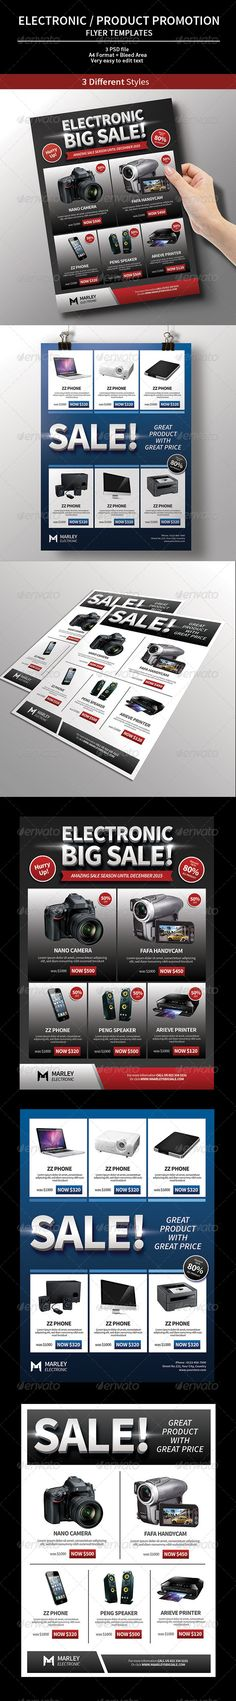 Electronic / Product Promotion Flyer - Commerce Flyers